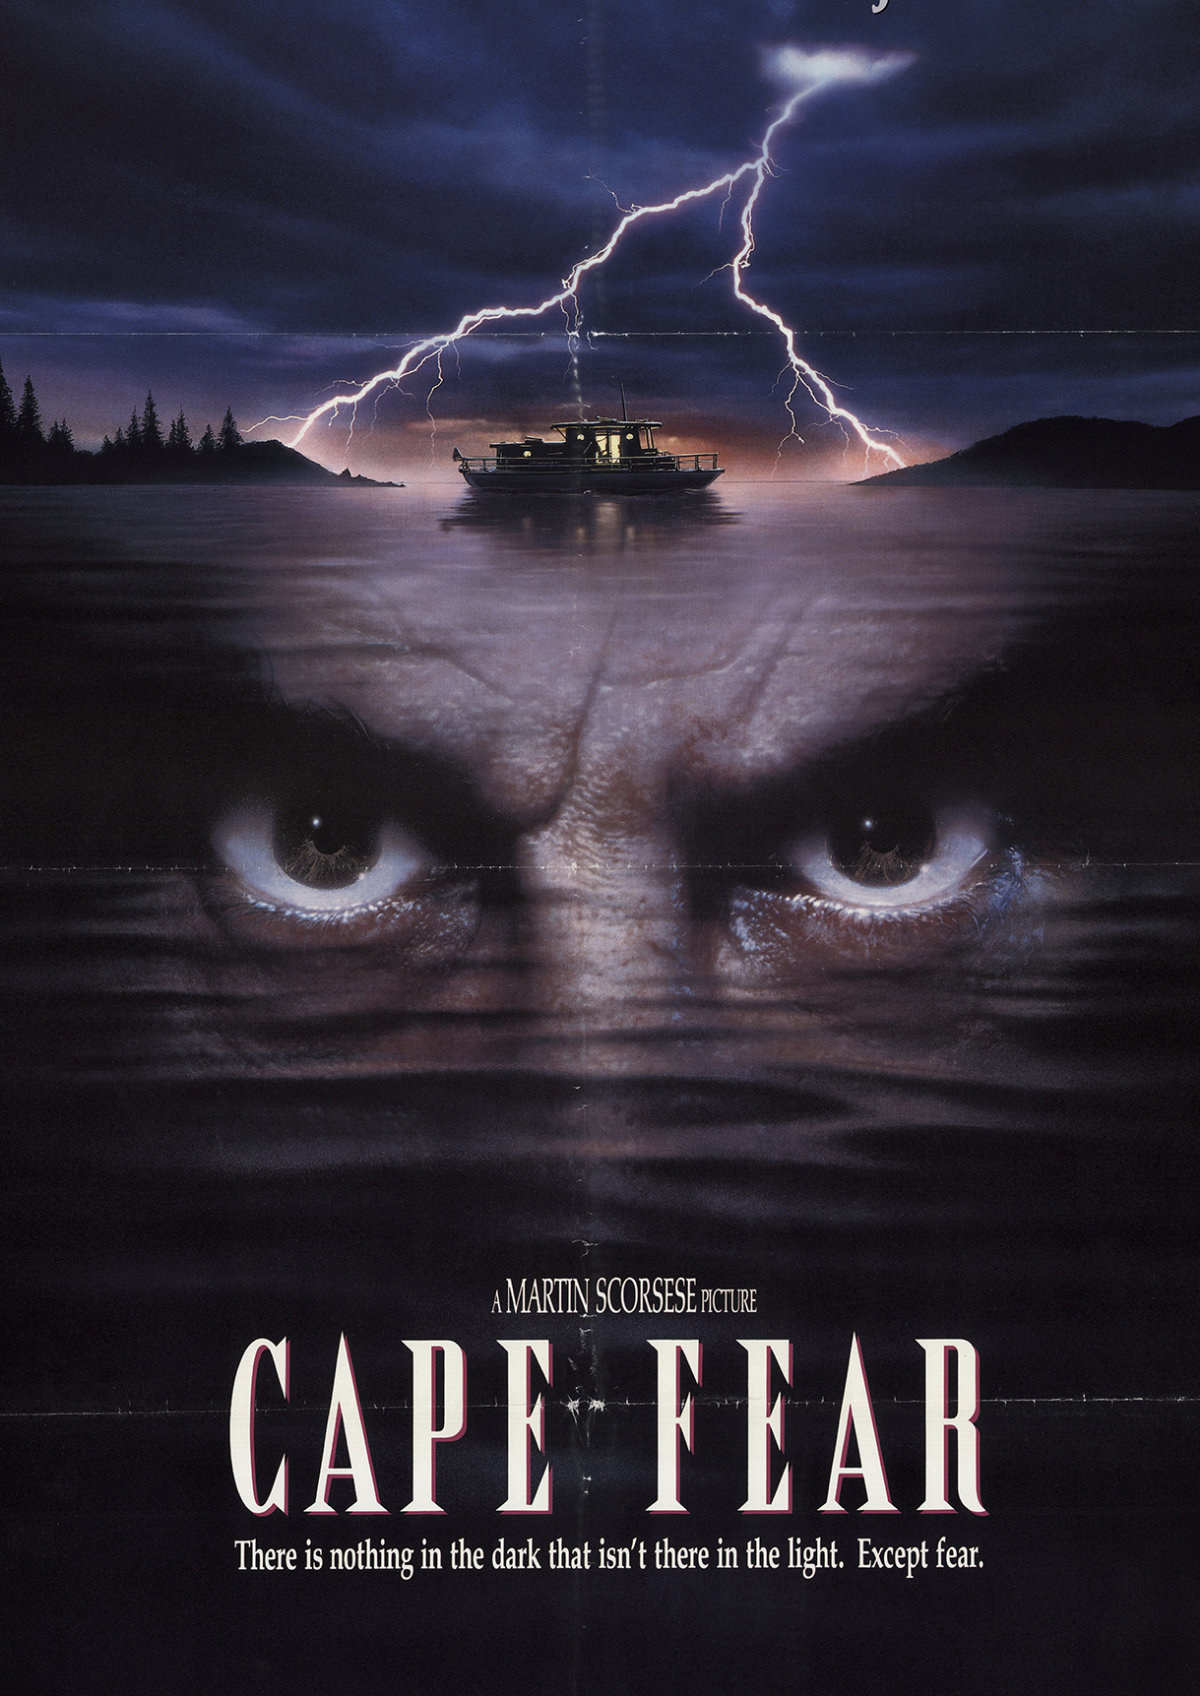 'Cape Fear' movie poster